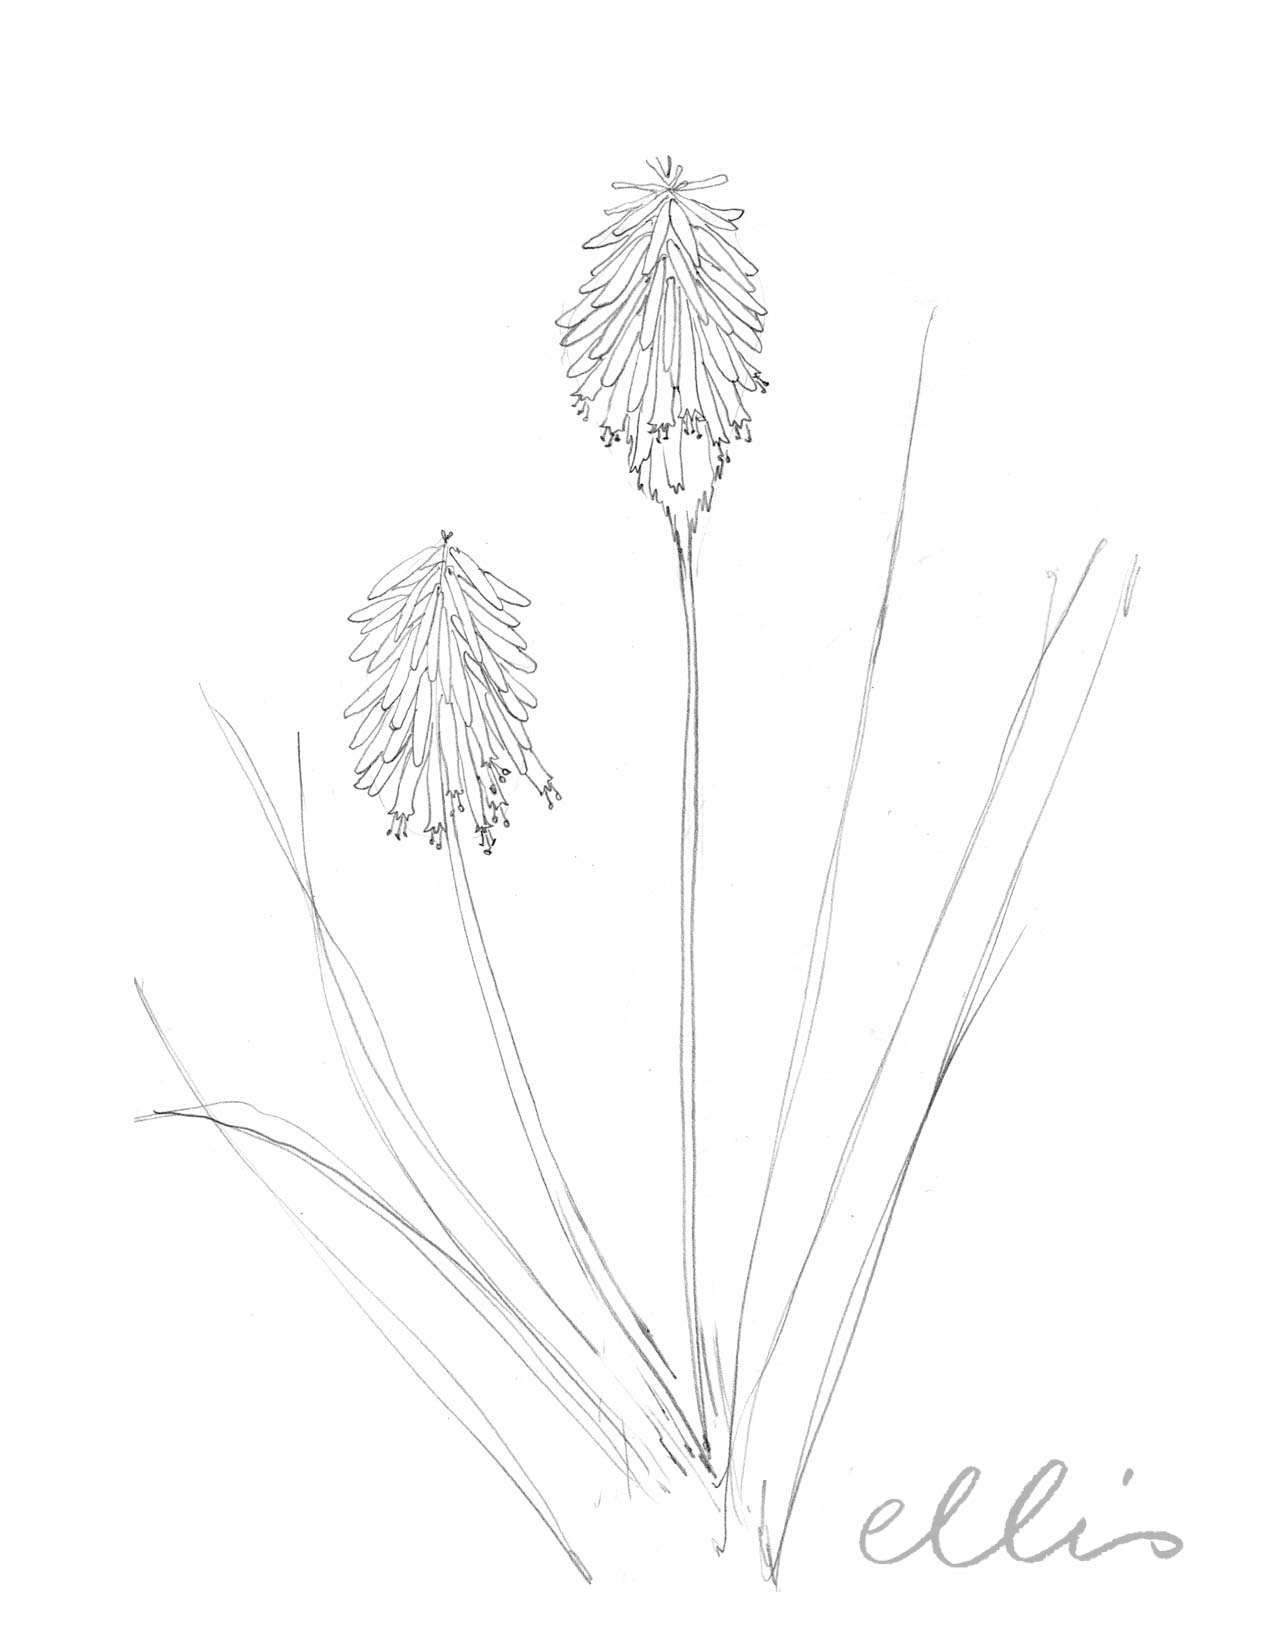 Erin Ellis_100 days project botanical drawings_2013-75.jpg